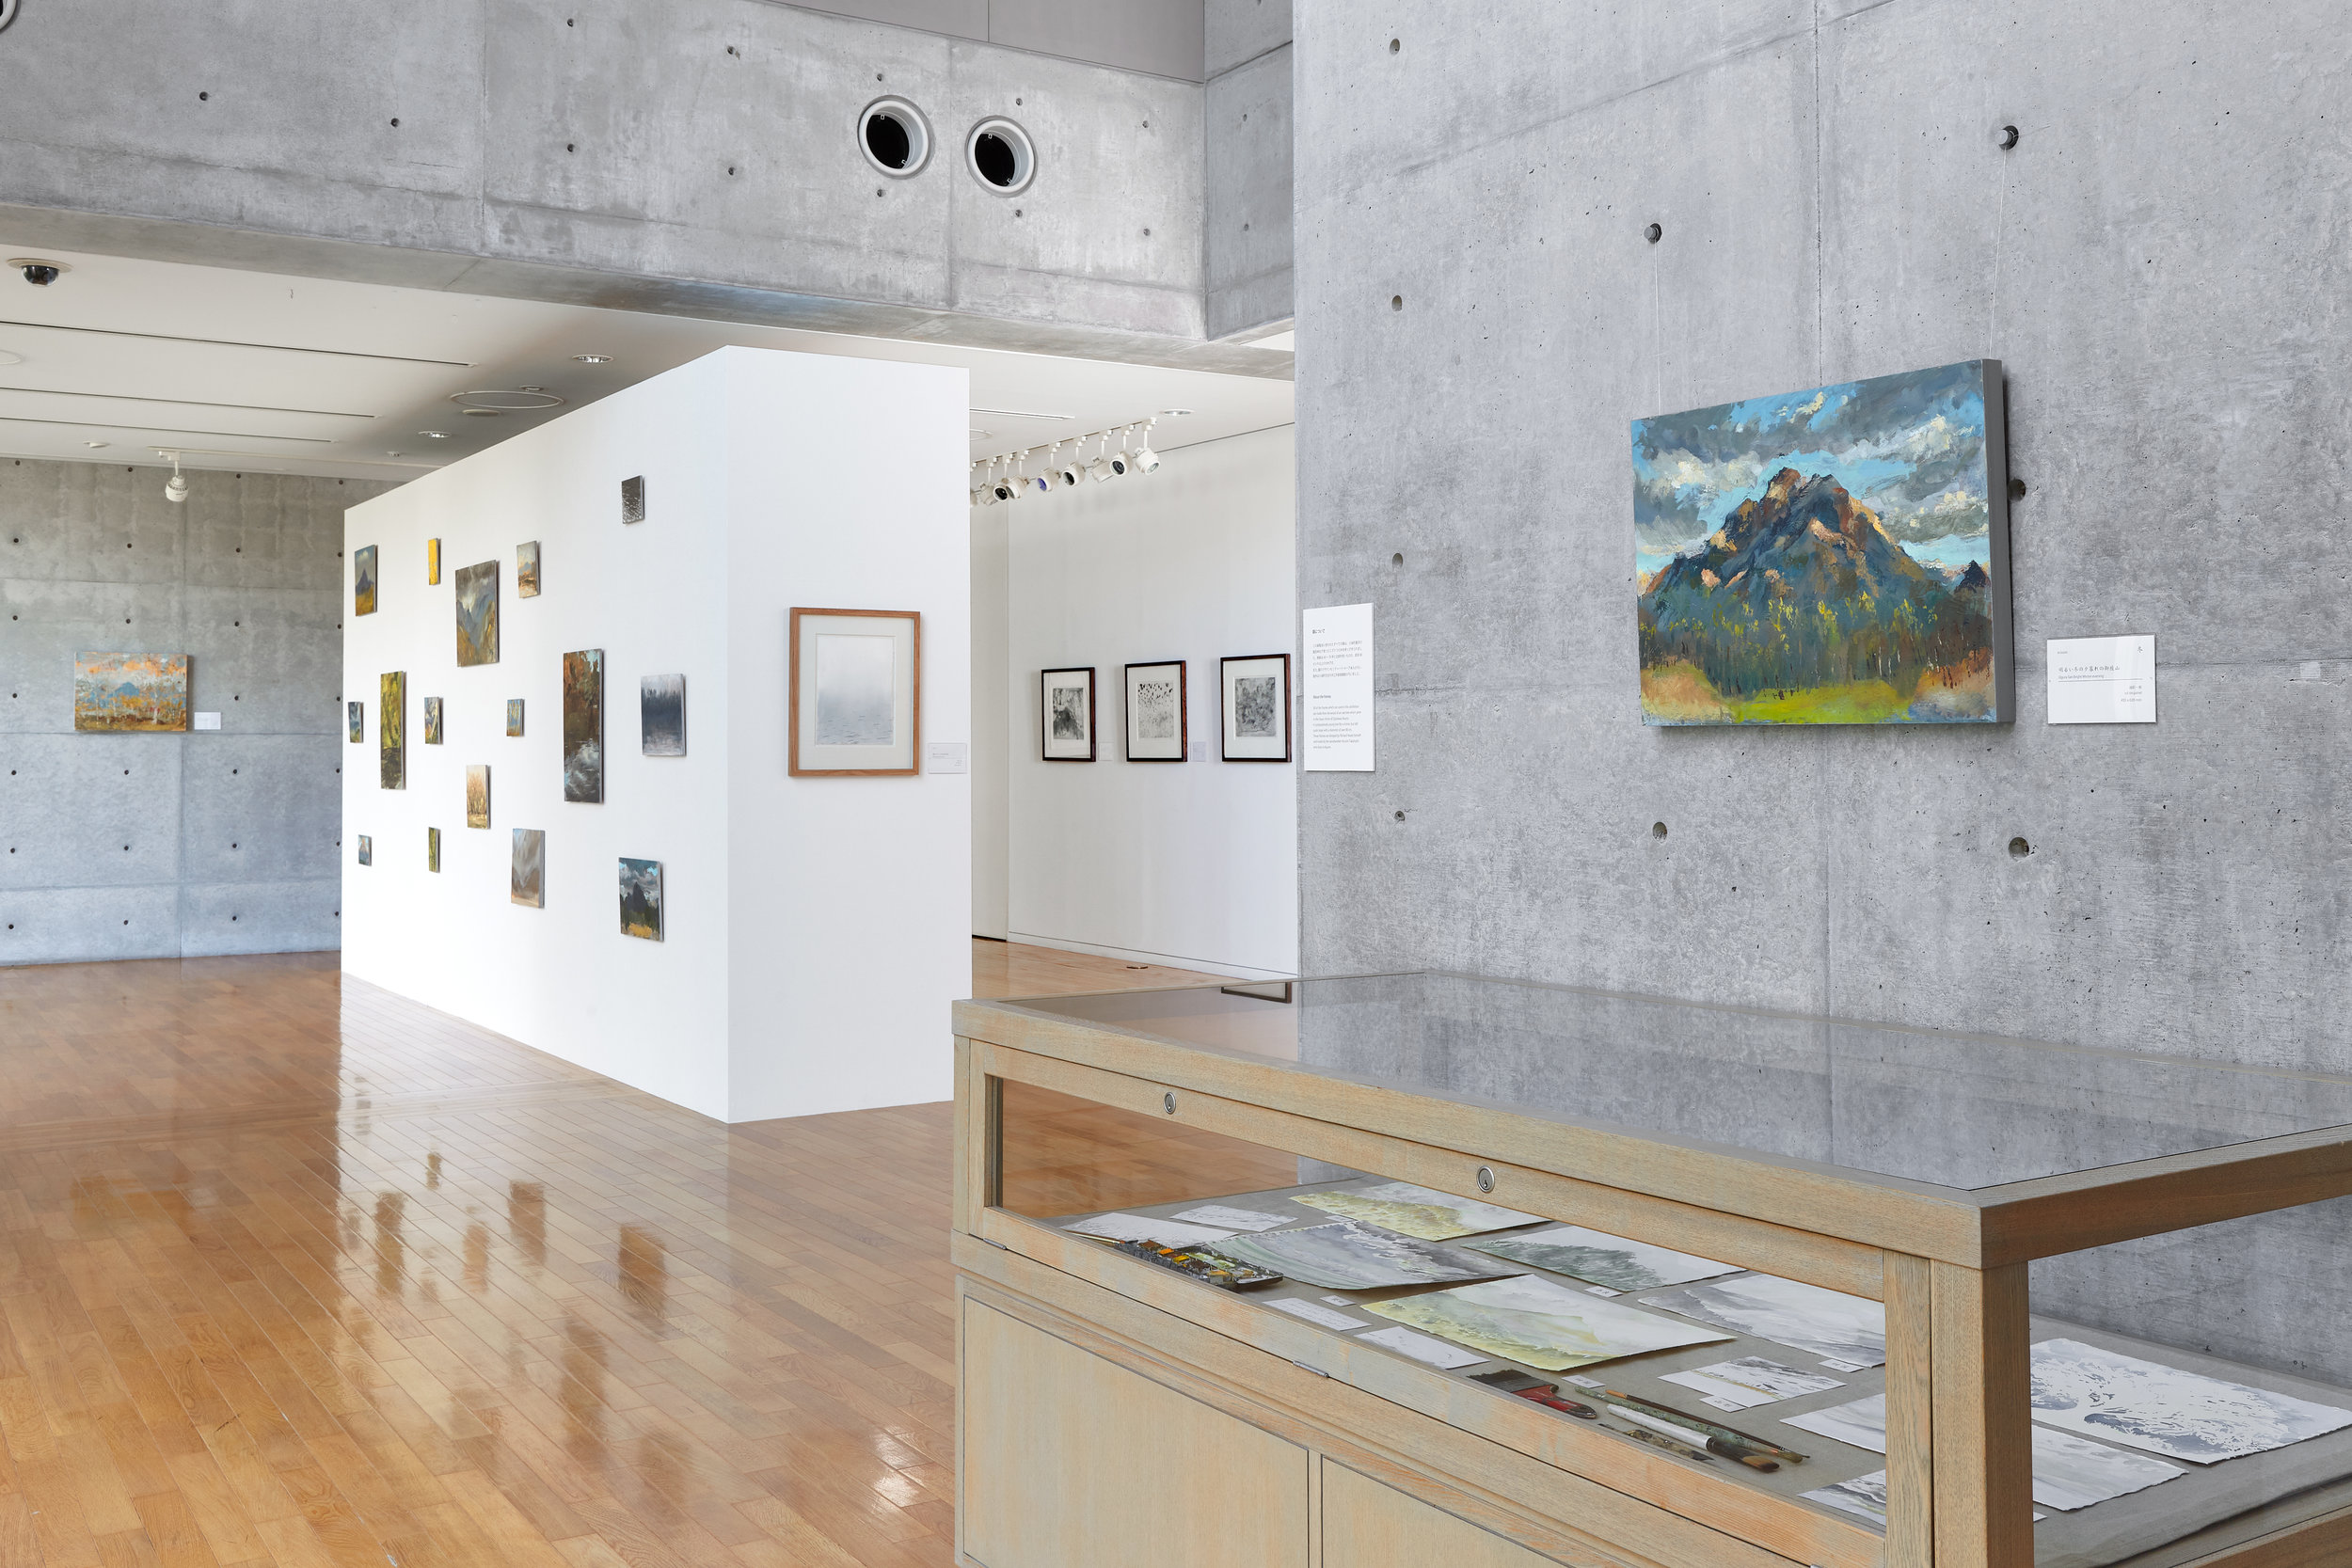 A view into the gallery of works on paper and the 'Wall of Song': an assortment of small works of oil on panel